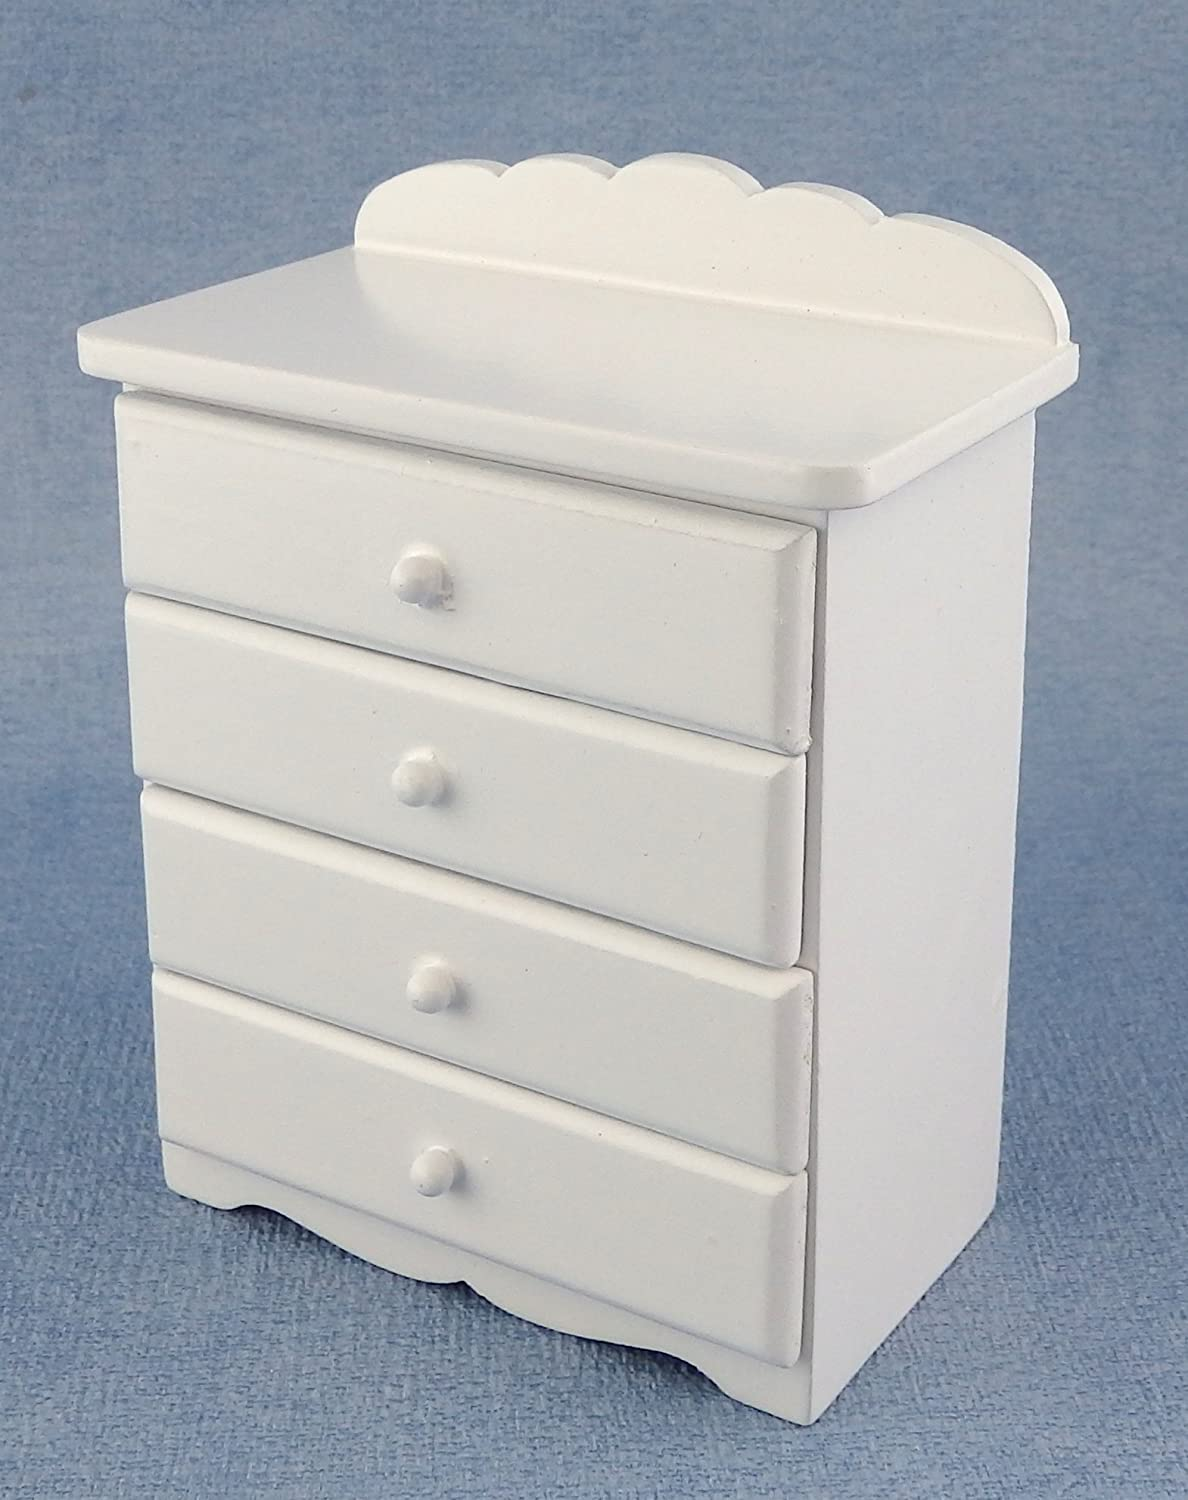 Dollhouse Miniature 1:12 Scale White Wide 4-drawer Chest #T5139 AZTEC IMPORTS